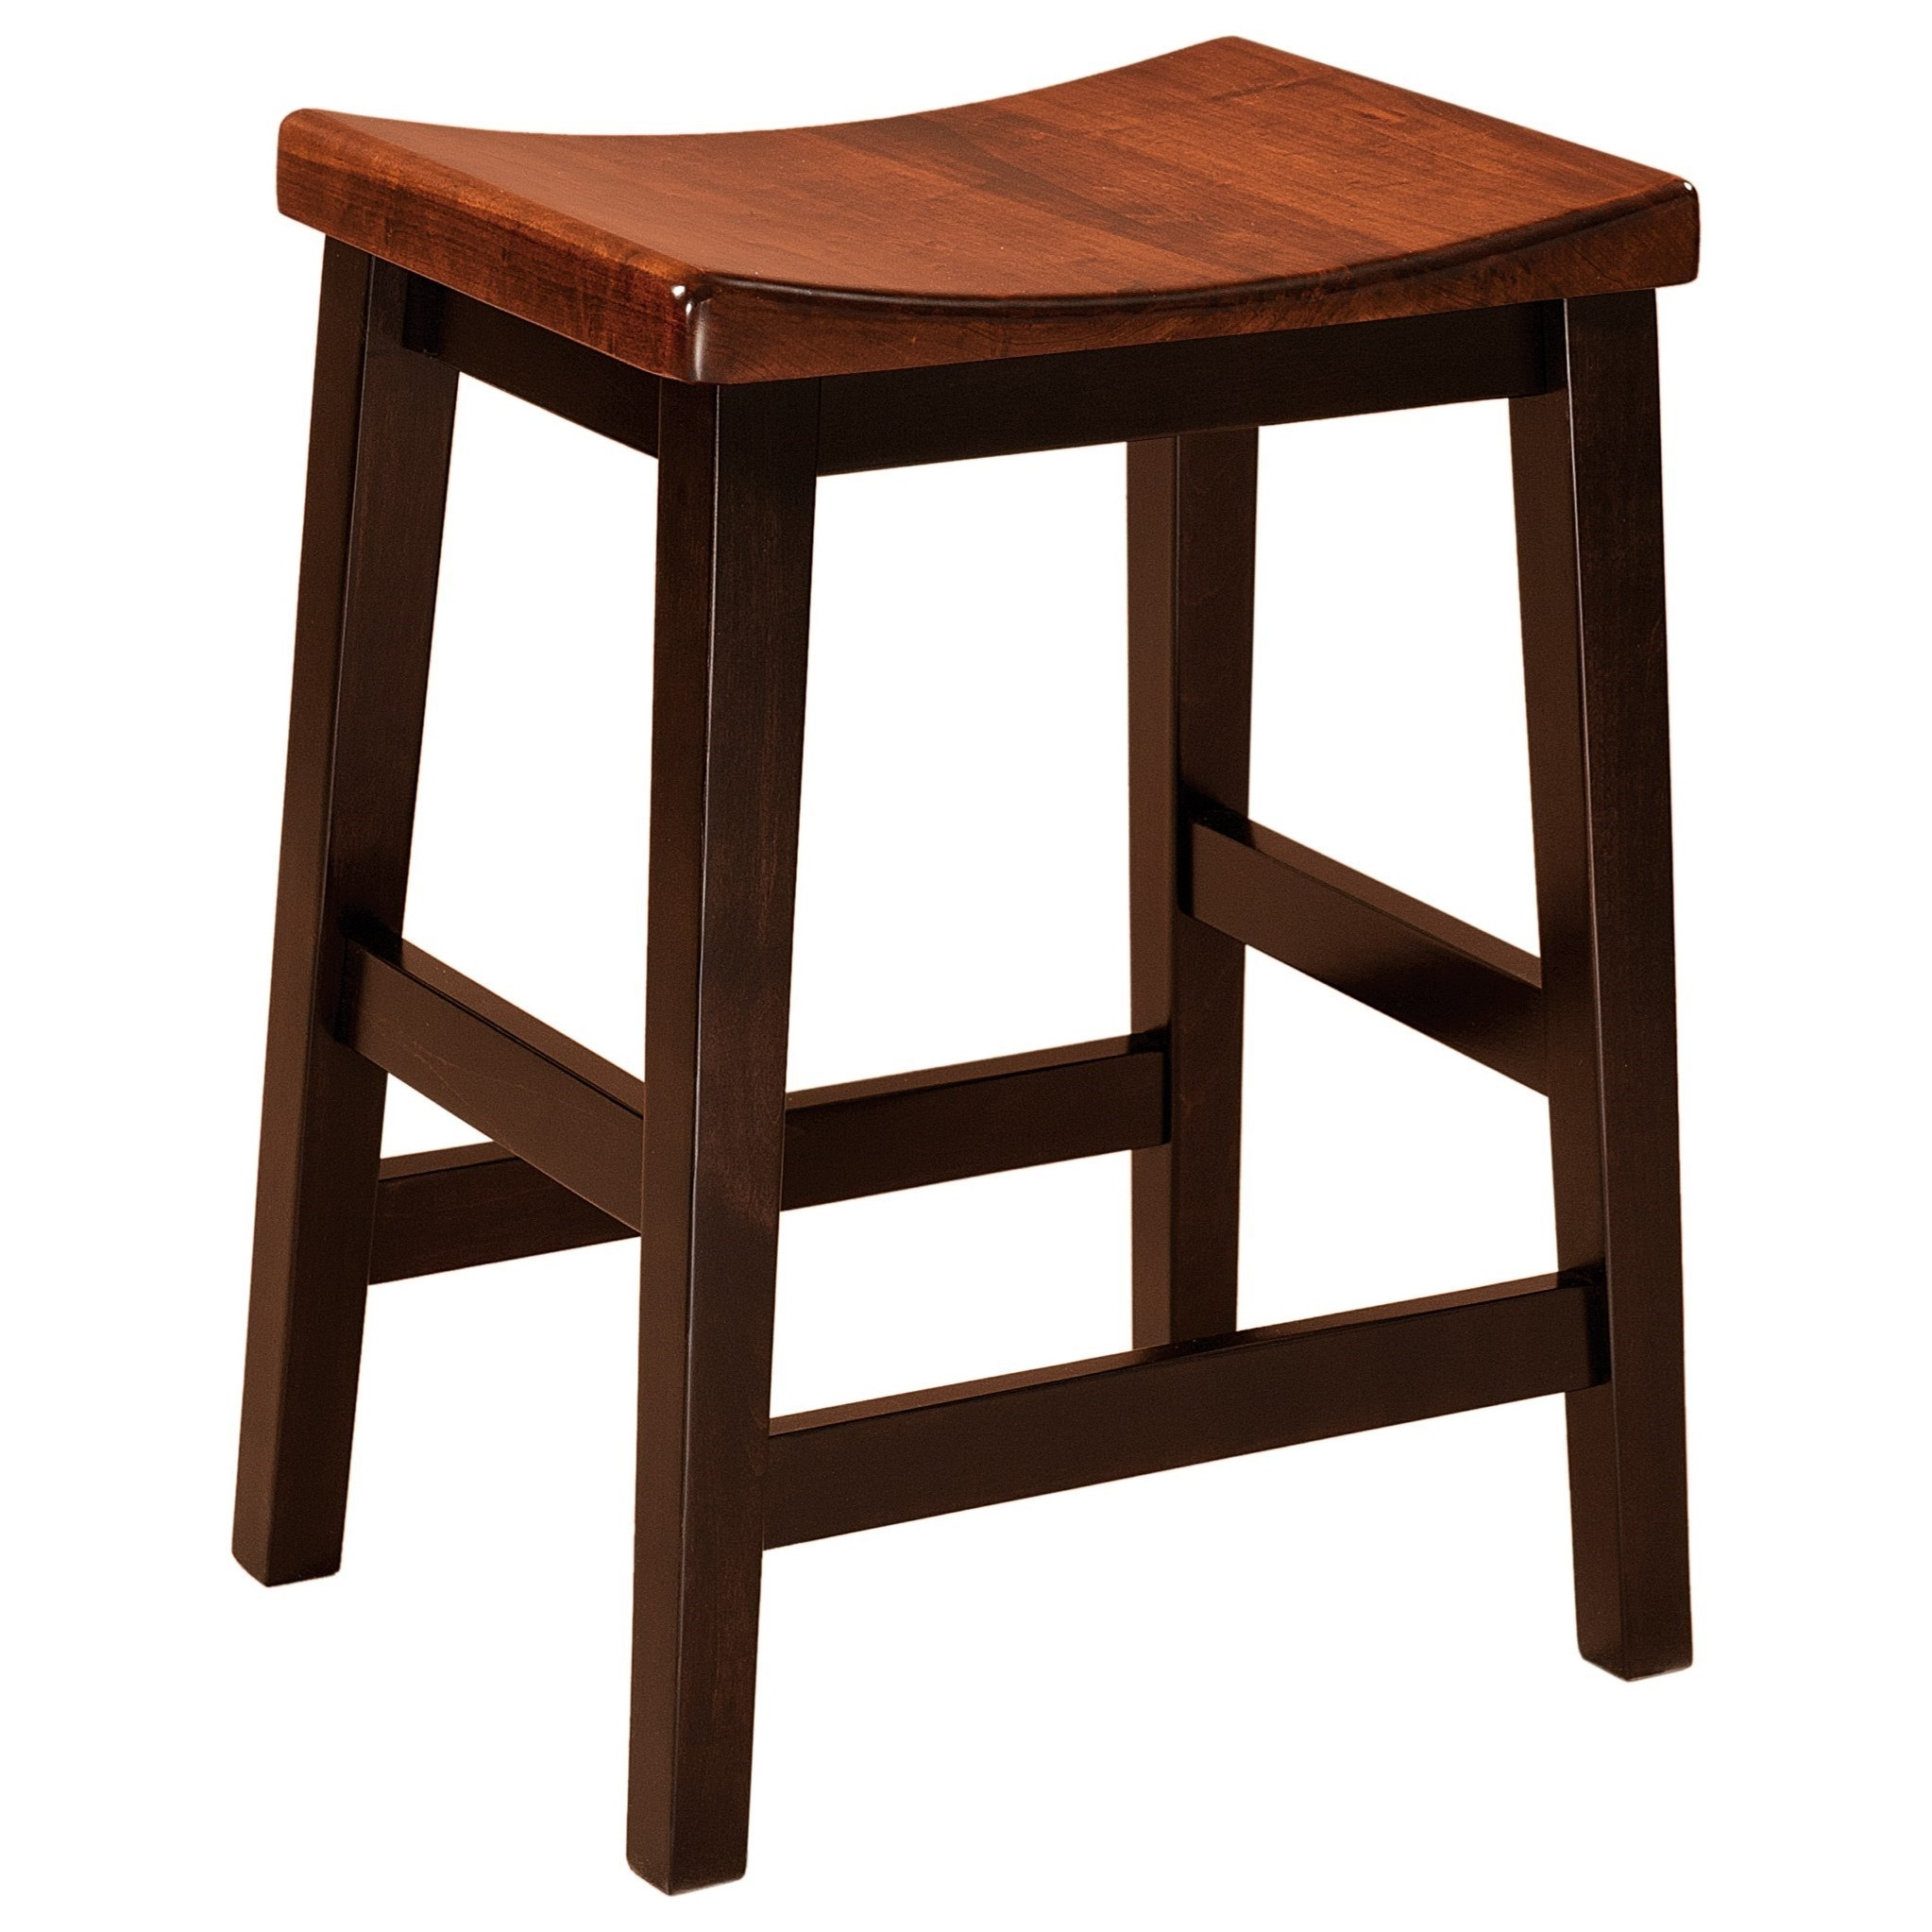 """Coby Bar Stool 30"""" Height - Leather Seat by F&N Woodworking at Wayside Furniture"""